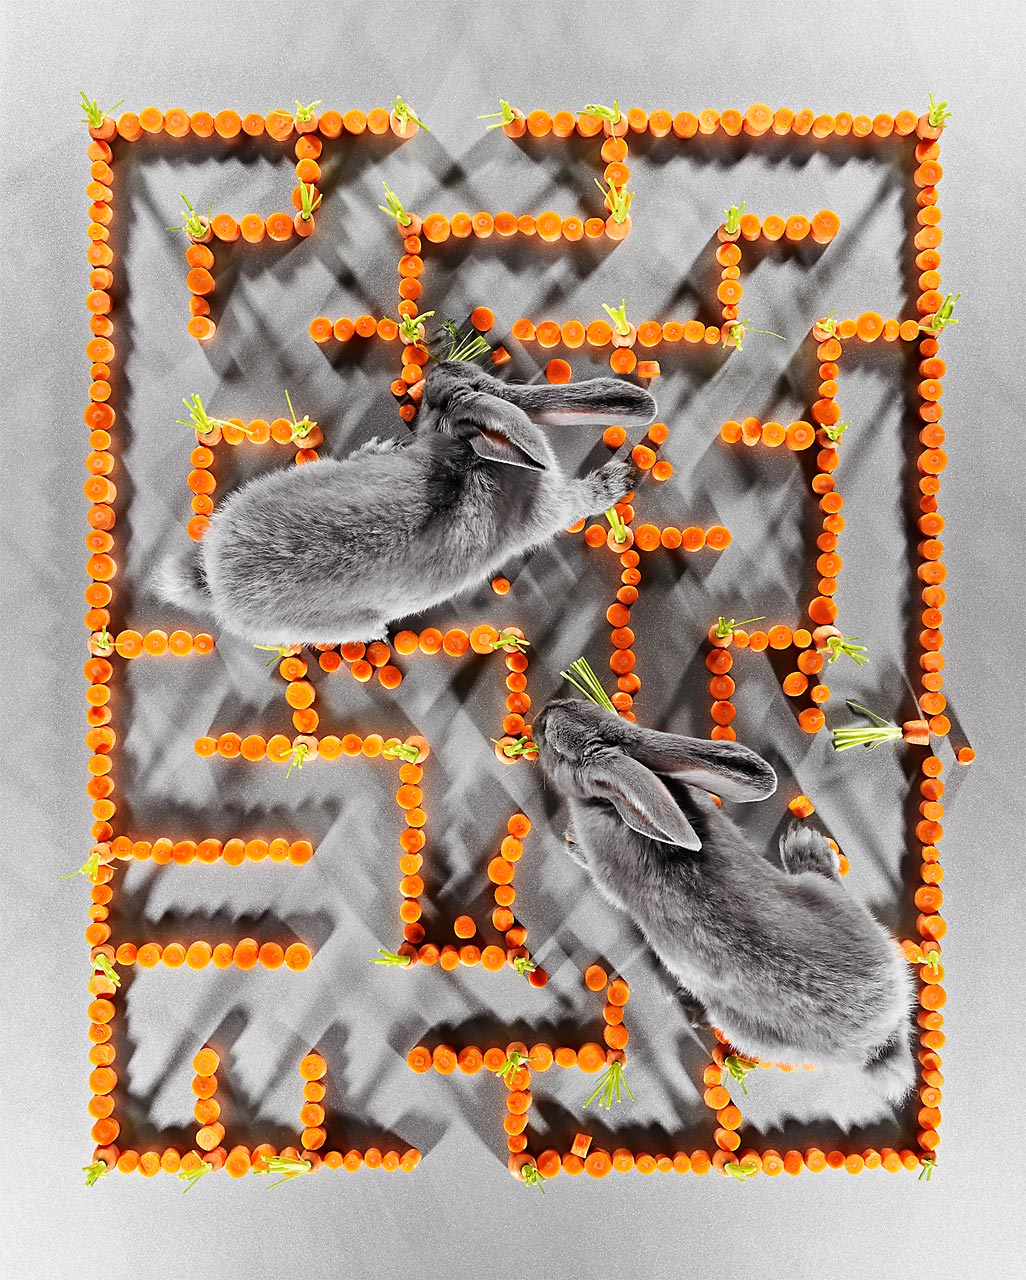 Sabine-Scheer-labyrinth-rabbit